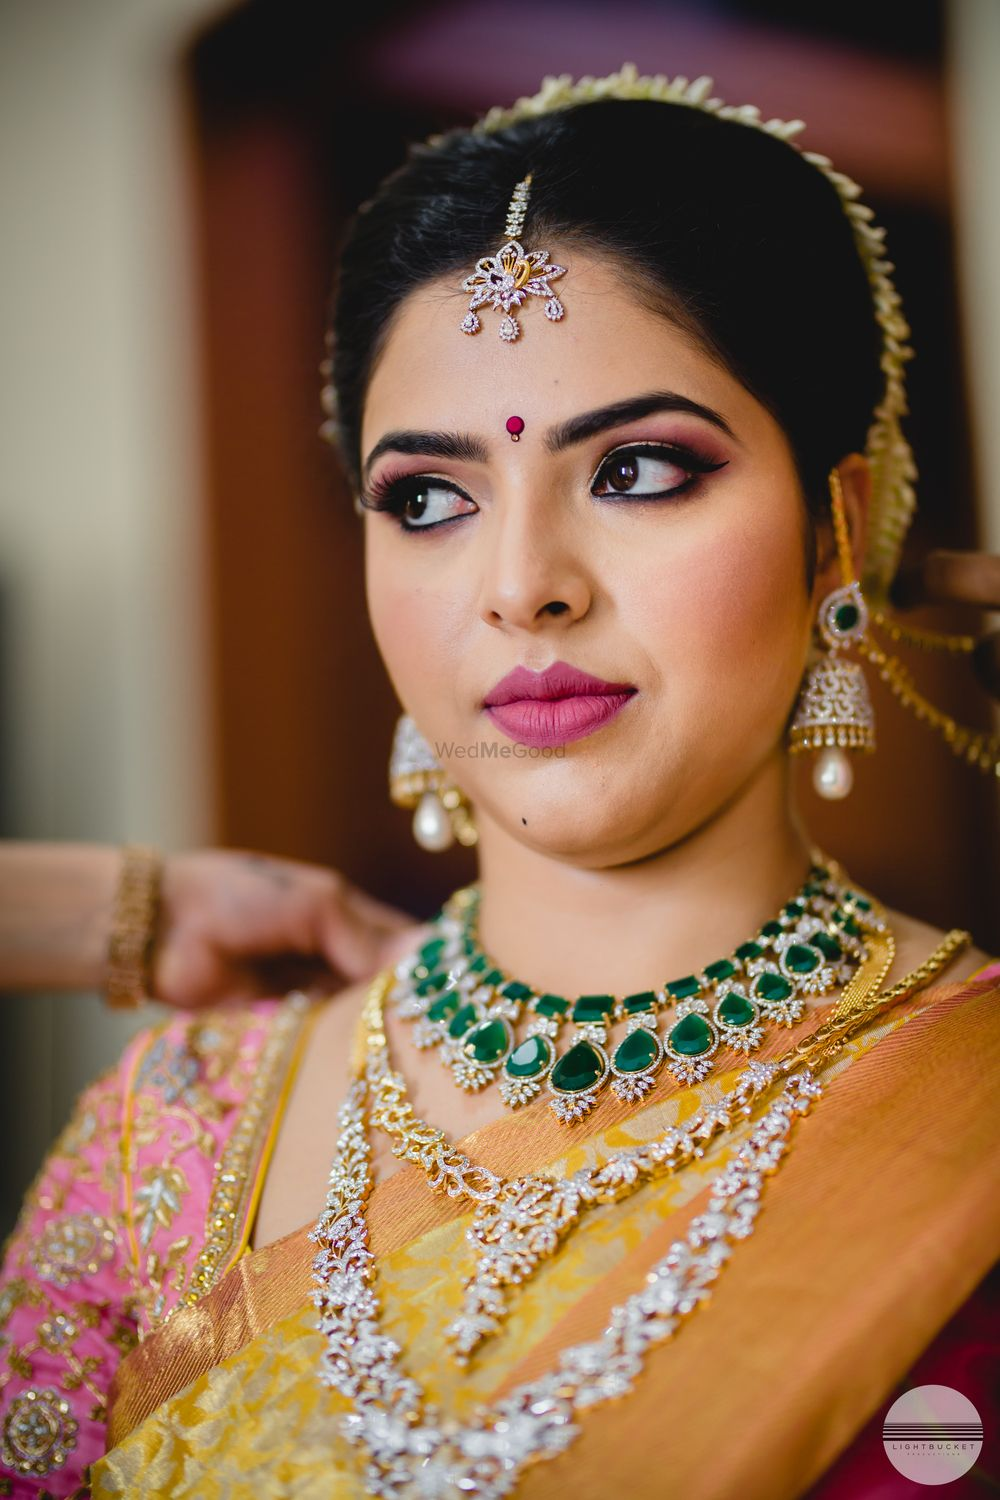 Photo of Layered diamond and emerald necklaces for South Indian bride